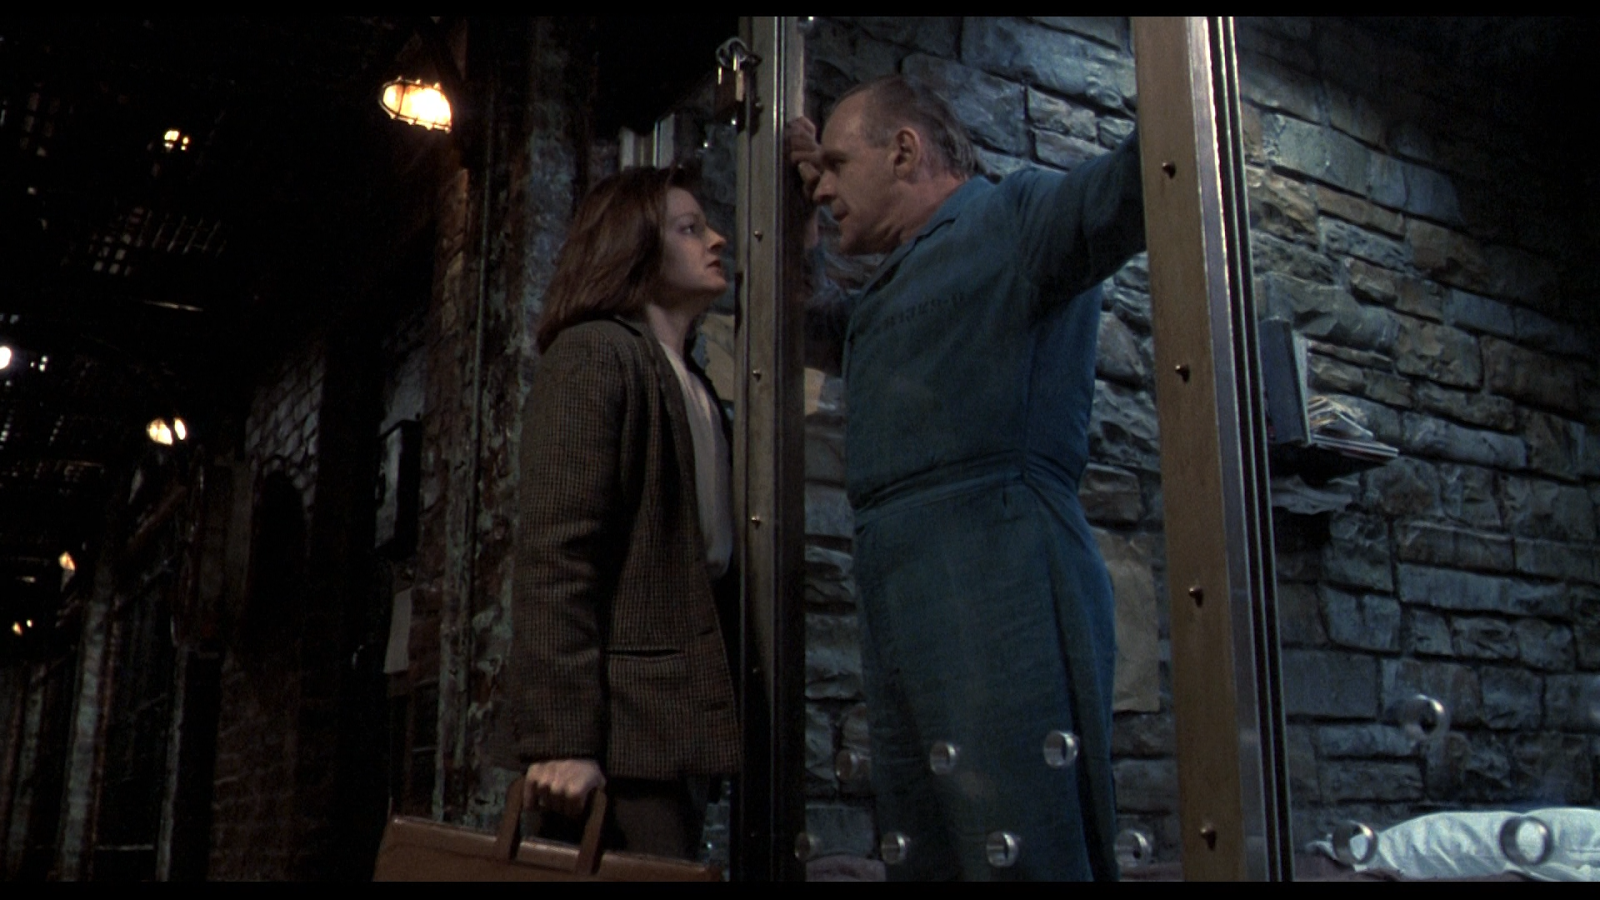 The Silence of the Lambs – book to screen adaptation